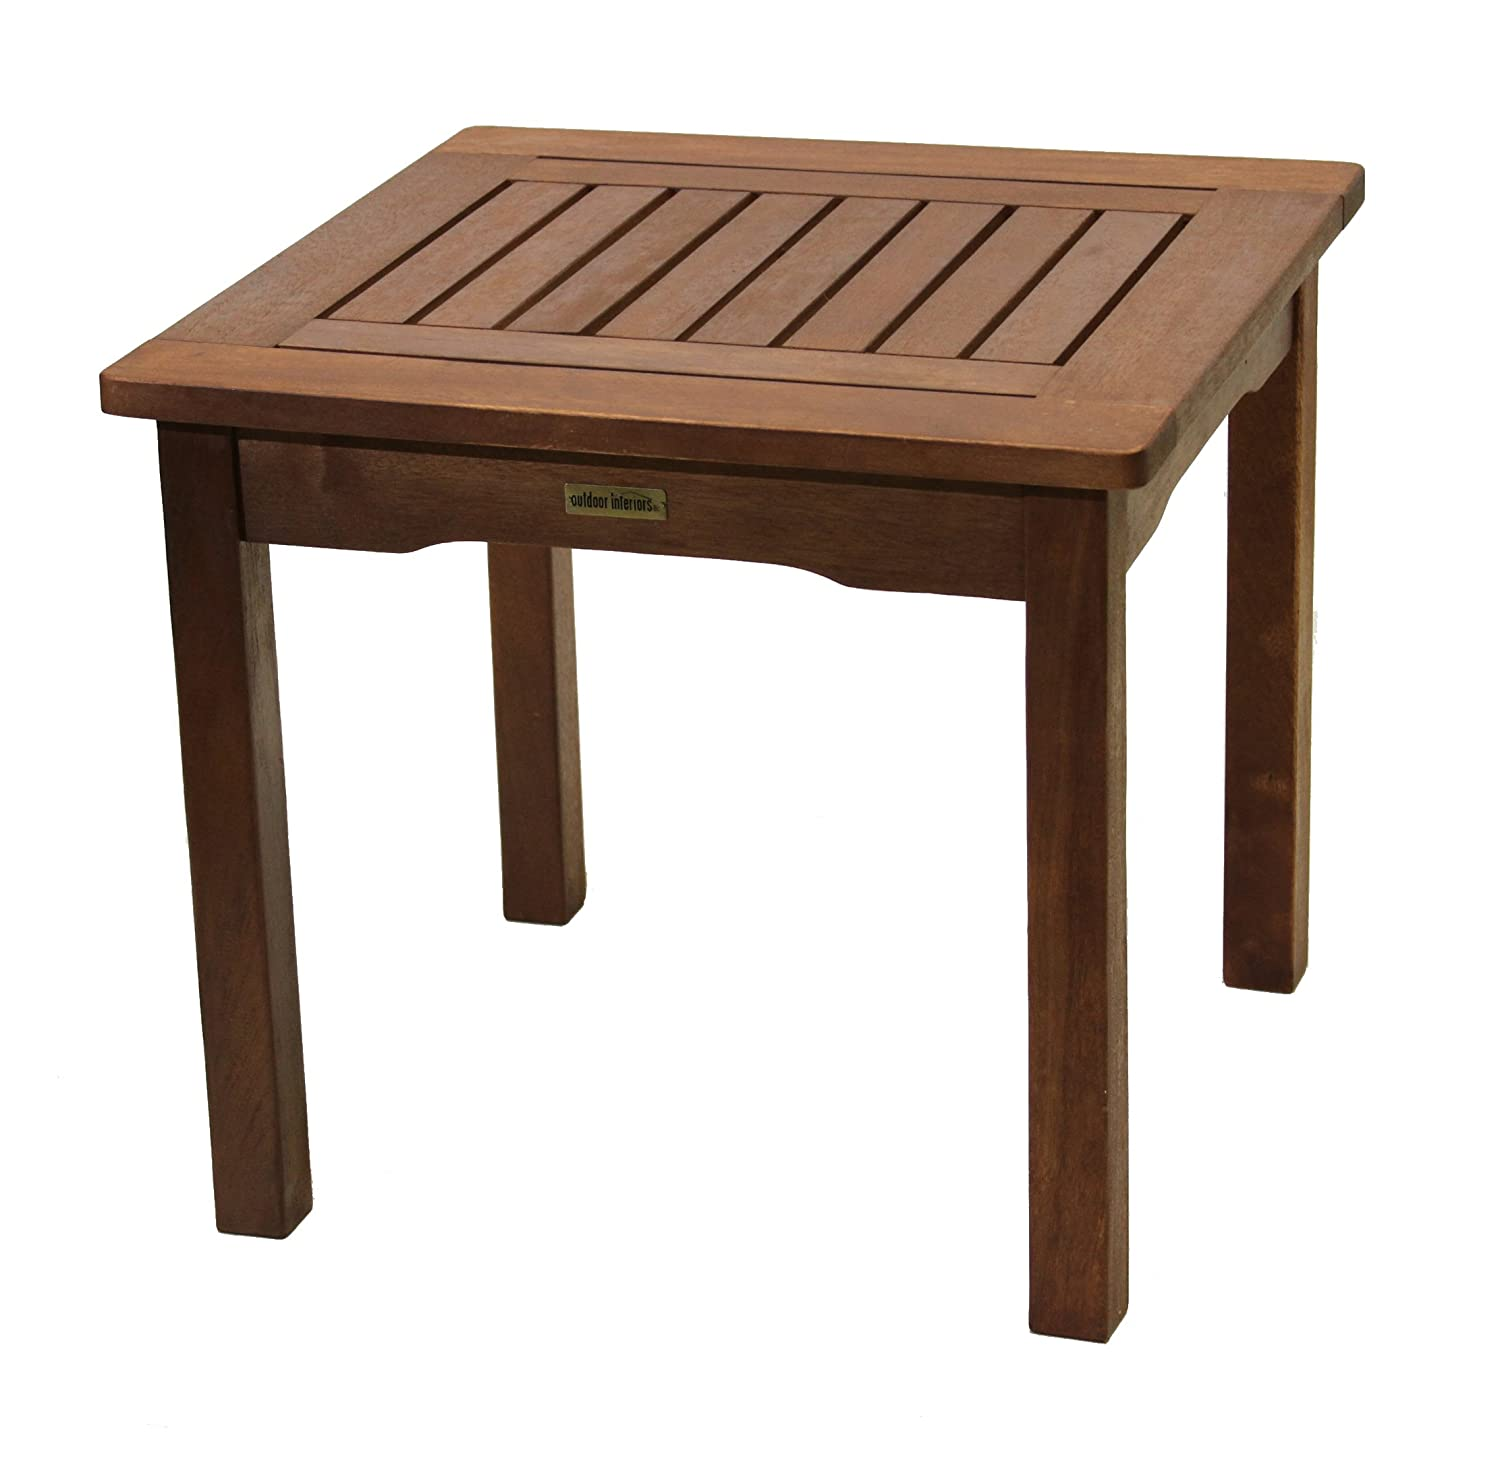 end table eucalyptus easy assembly garden furniture outdoor indoor